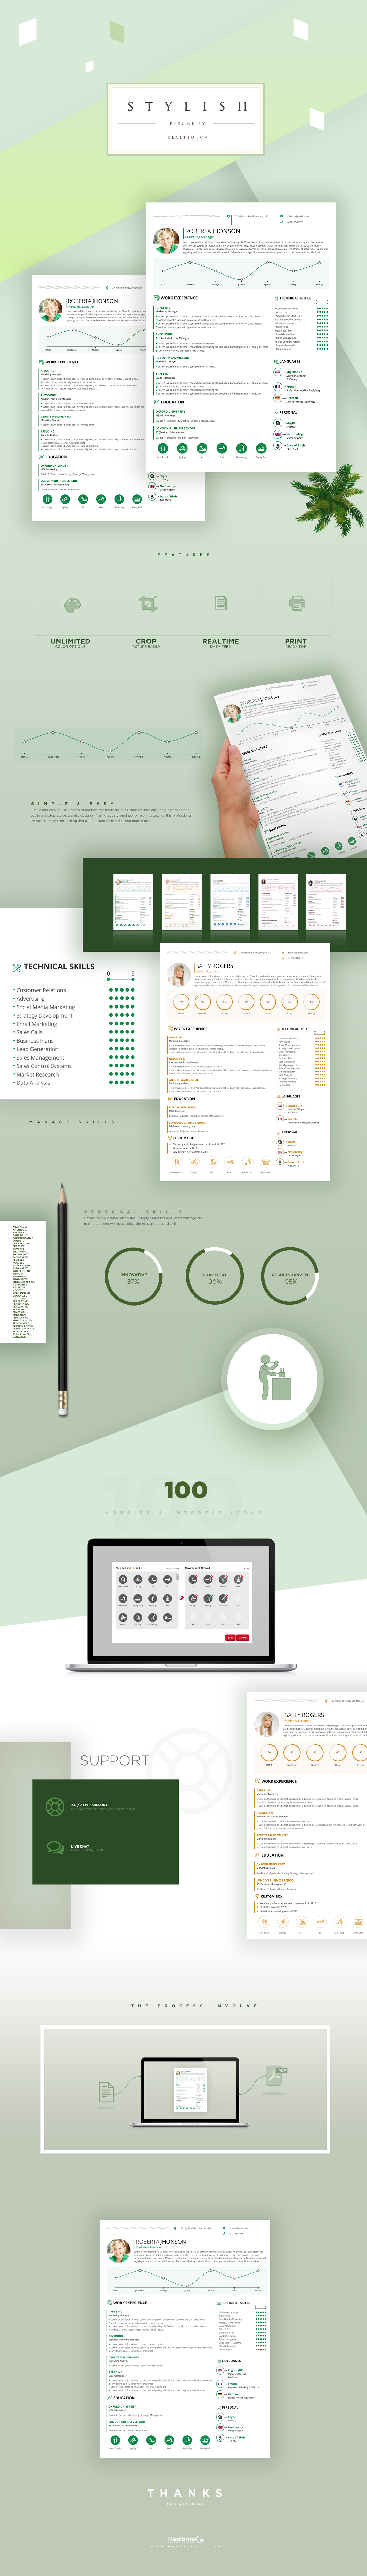 Pin by RealtimeCV on Creative Resume Templates Resume